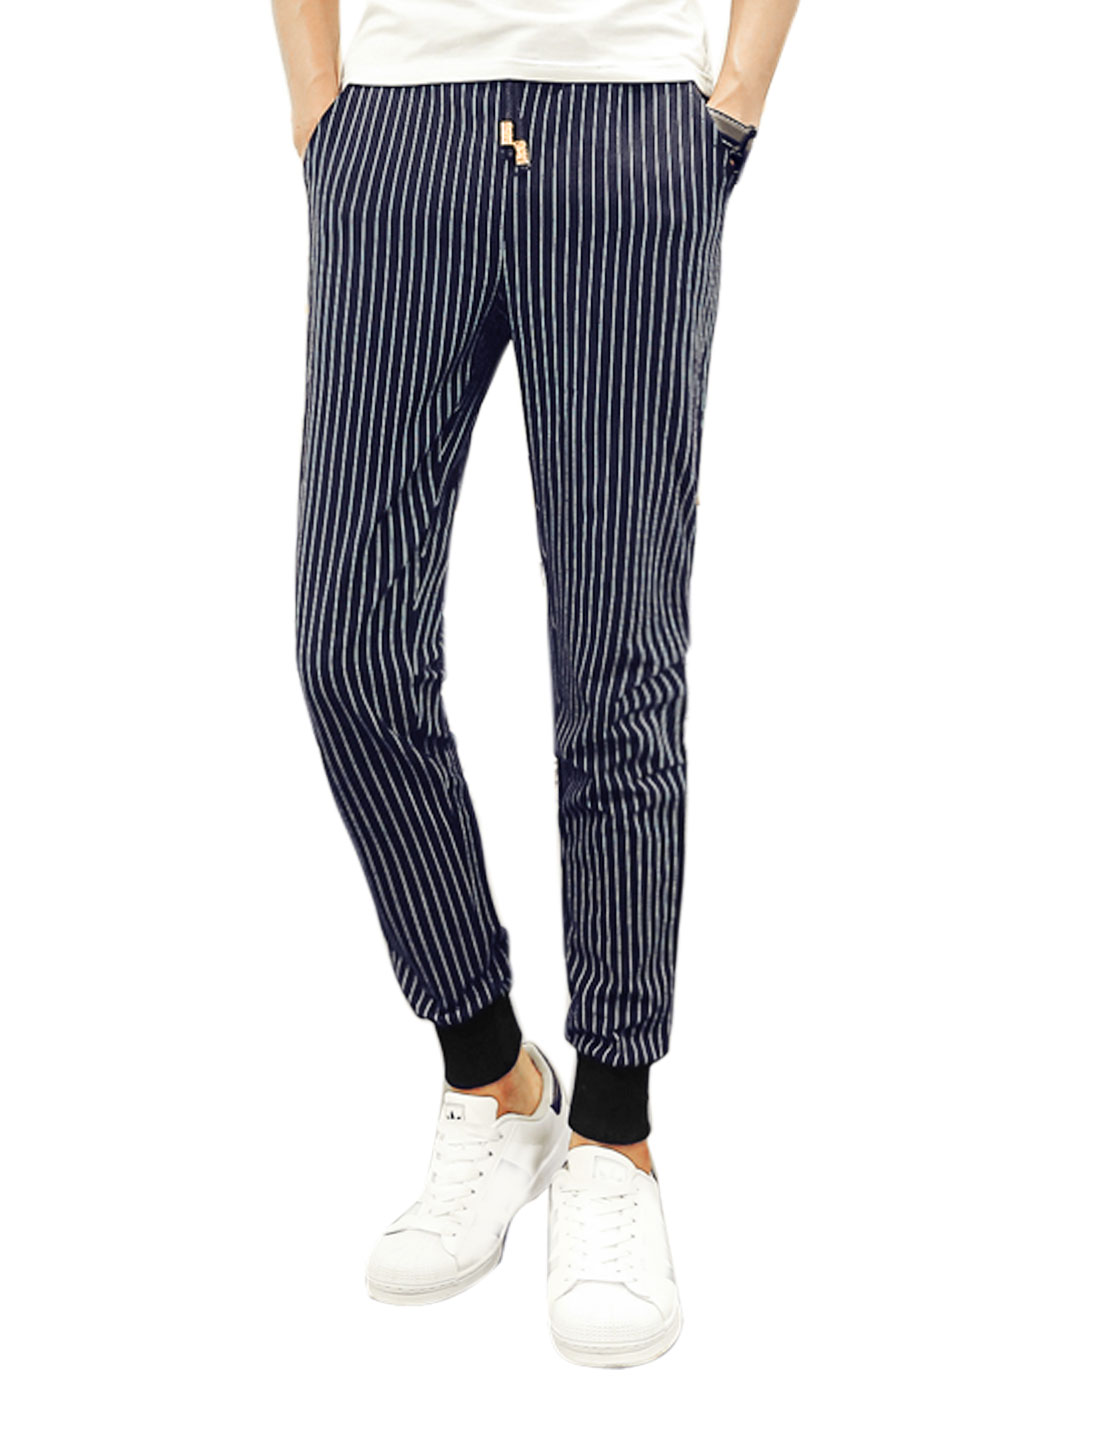 Men Natural Waist Stripes Slant Pockets Tapered Pants Blue W30